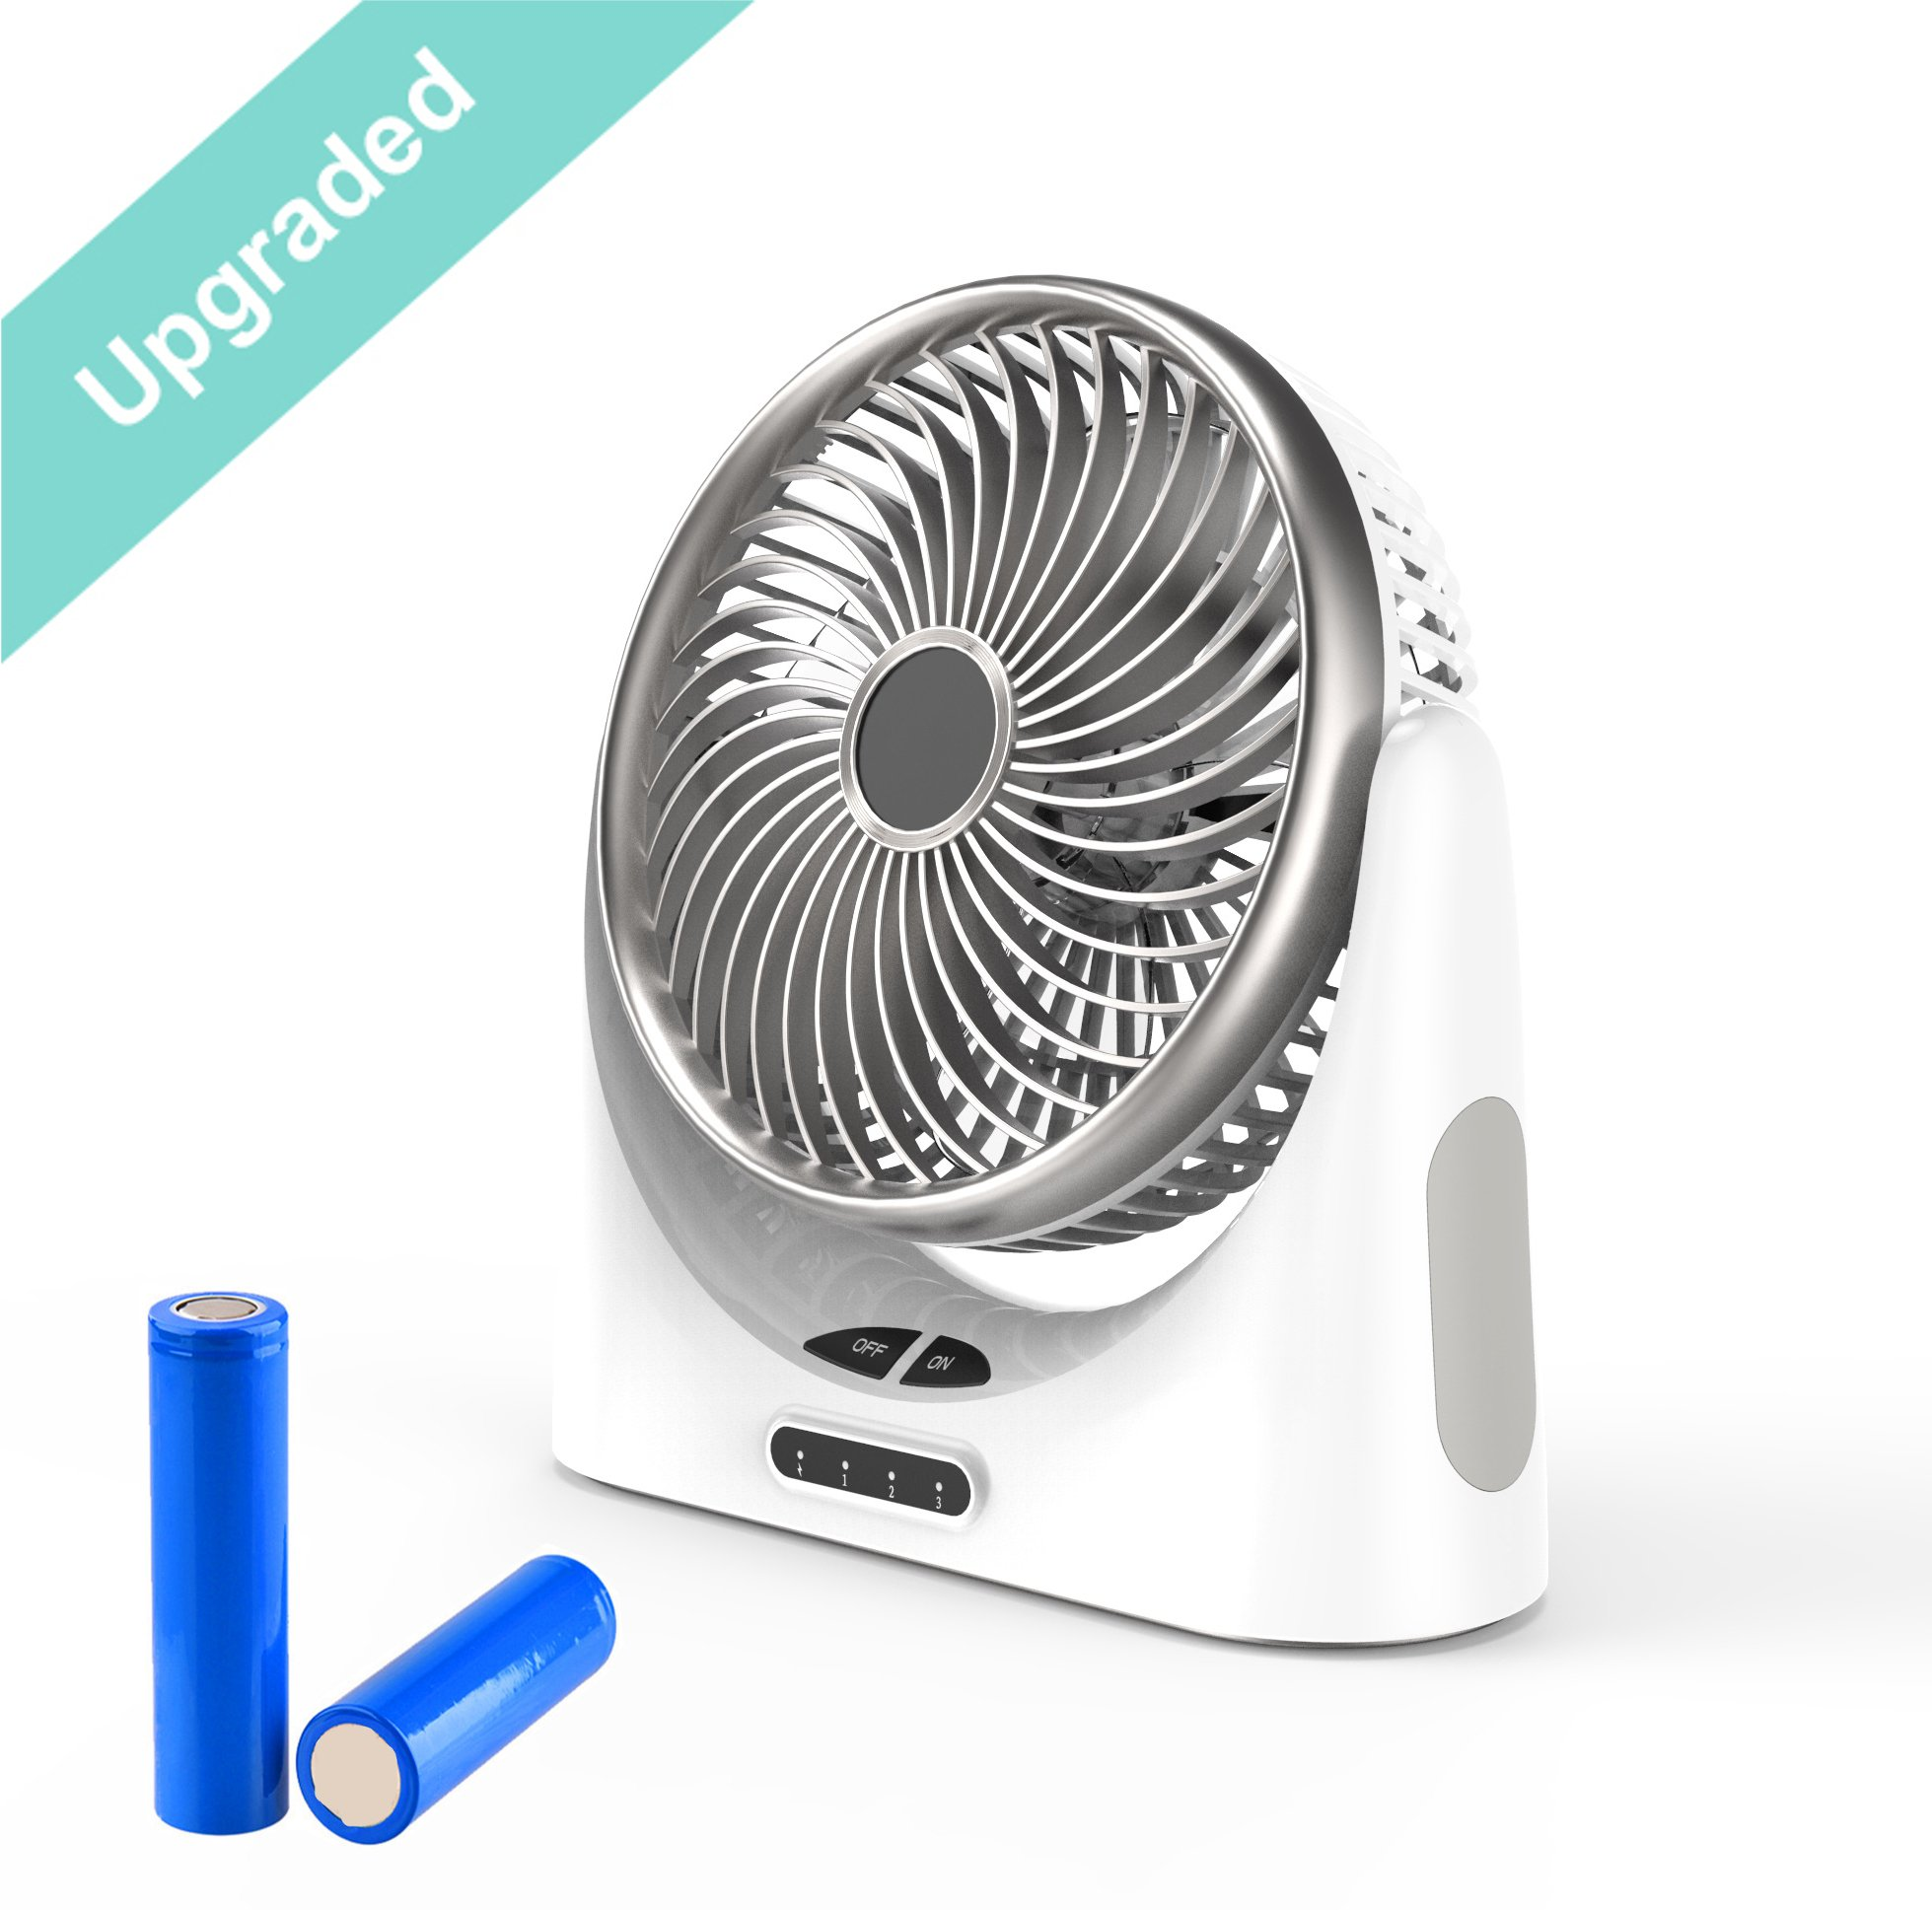 HCMAOE Mini USB Table Desk Personal Portable Air Circulator Fan 3 Speed, Lower Noise, Powered by USB or 4000mAh Rechargeable 18650 Battery with Power bank Function, Side LED Light for Office, (Silver) by HCMAOE (Image #1)